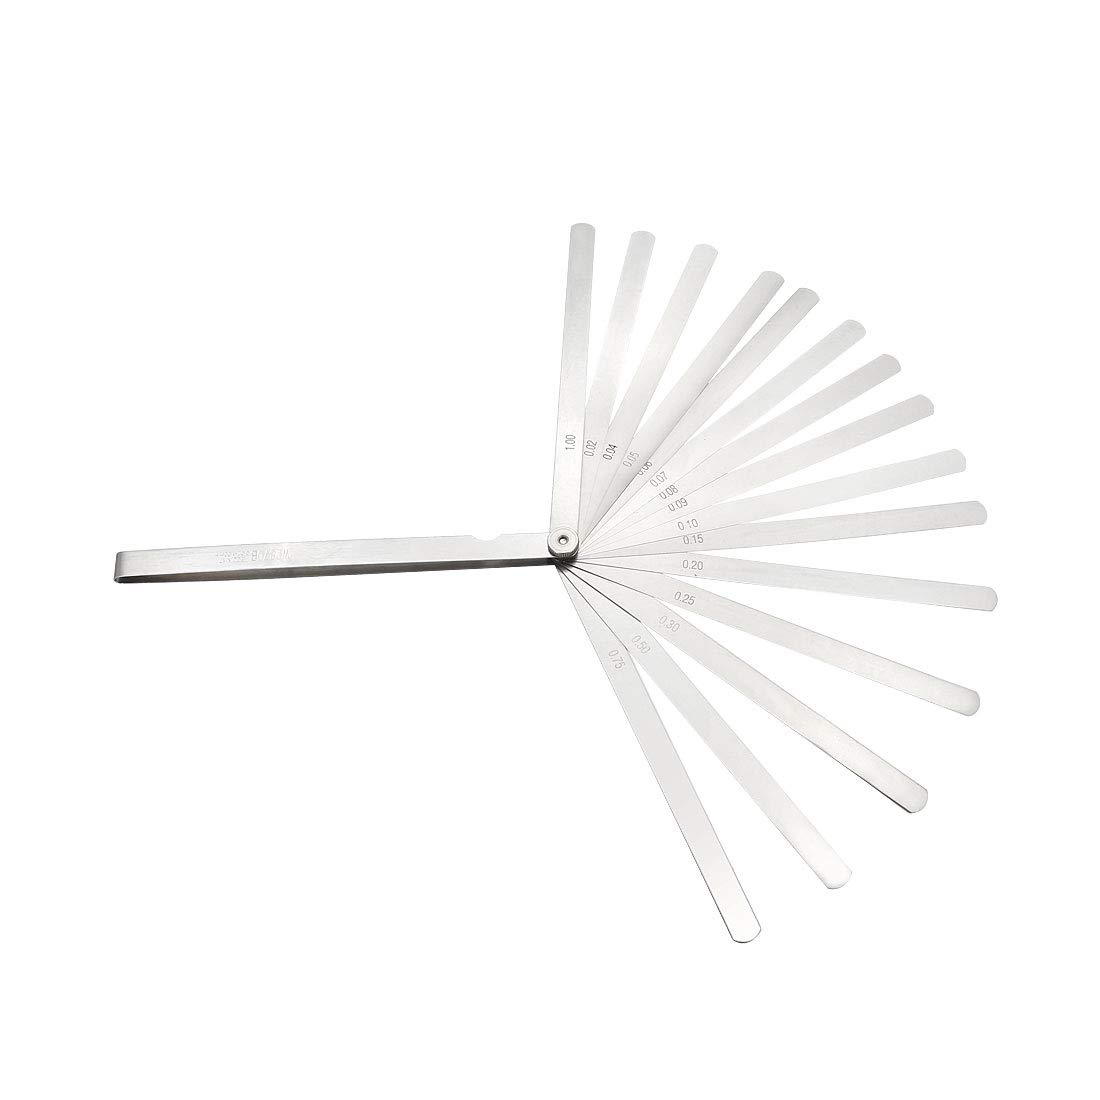 Feeler Gauge 0.02-1.0mm 0.0008-0.04 Inch 32 Pieces Stainless Steel